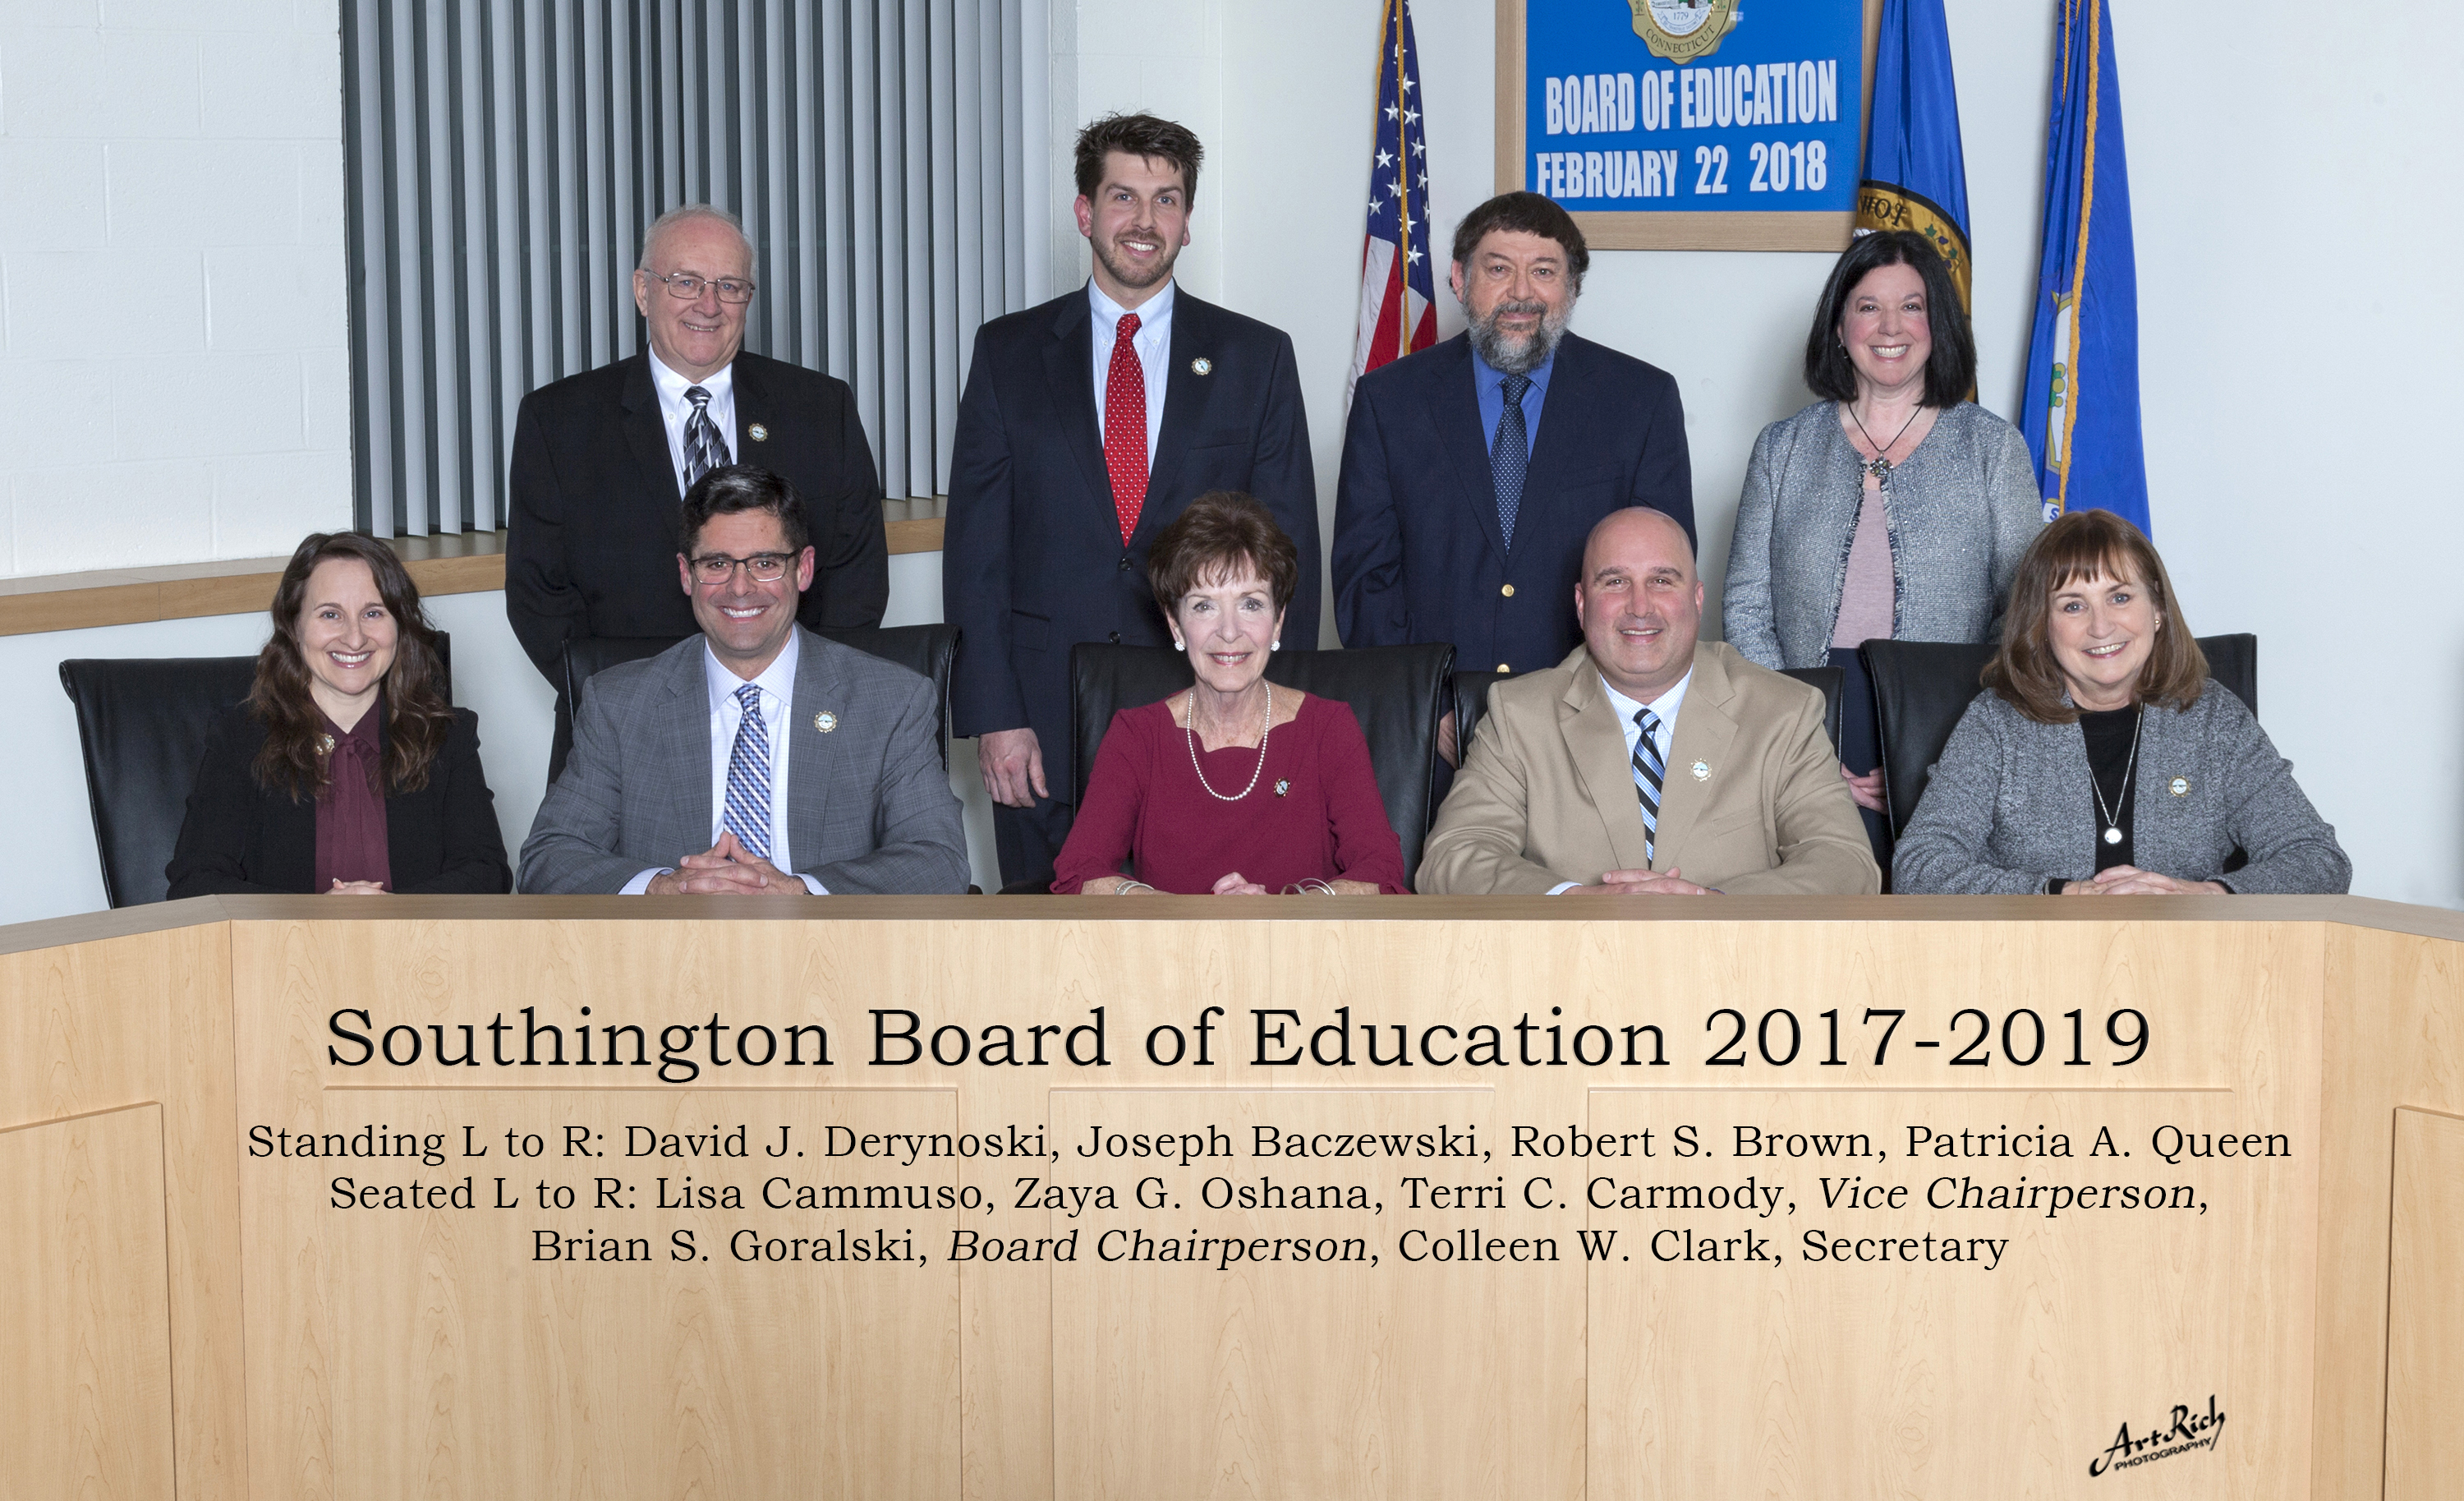 Board of Education members for 2017-2019